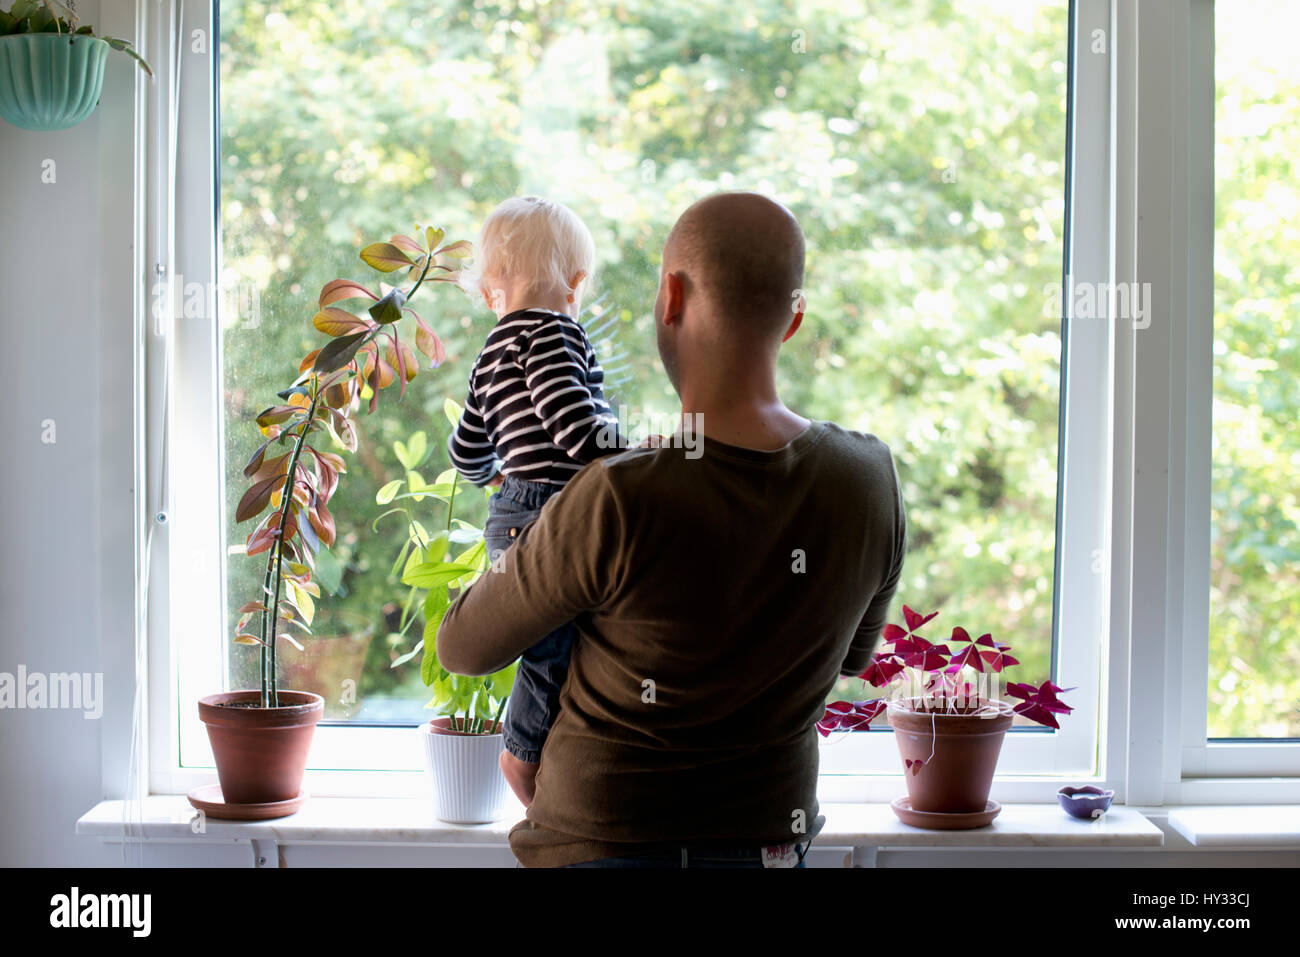 Sweden, Stay at home dad holding son (12-17 months) while looking through window - Stock Image